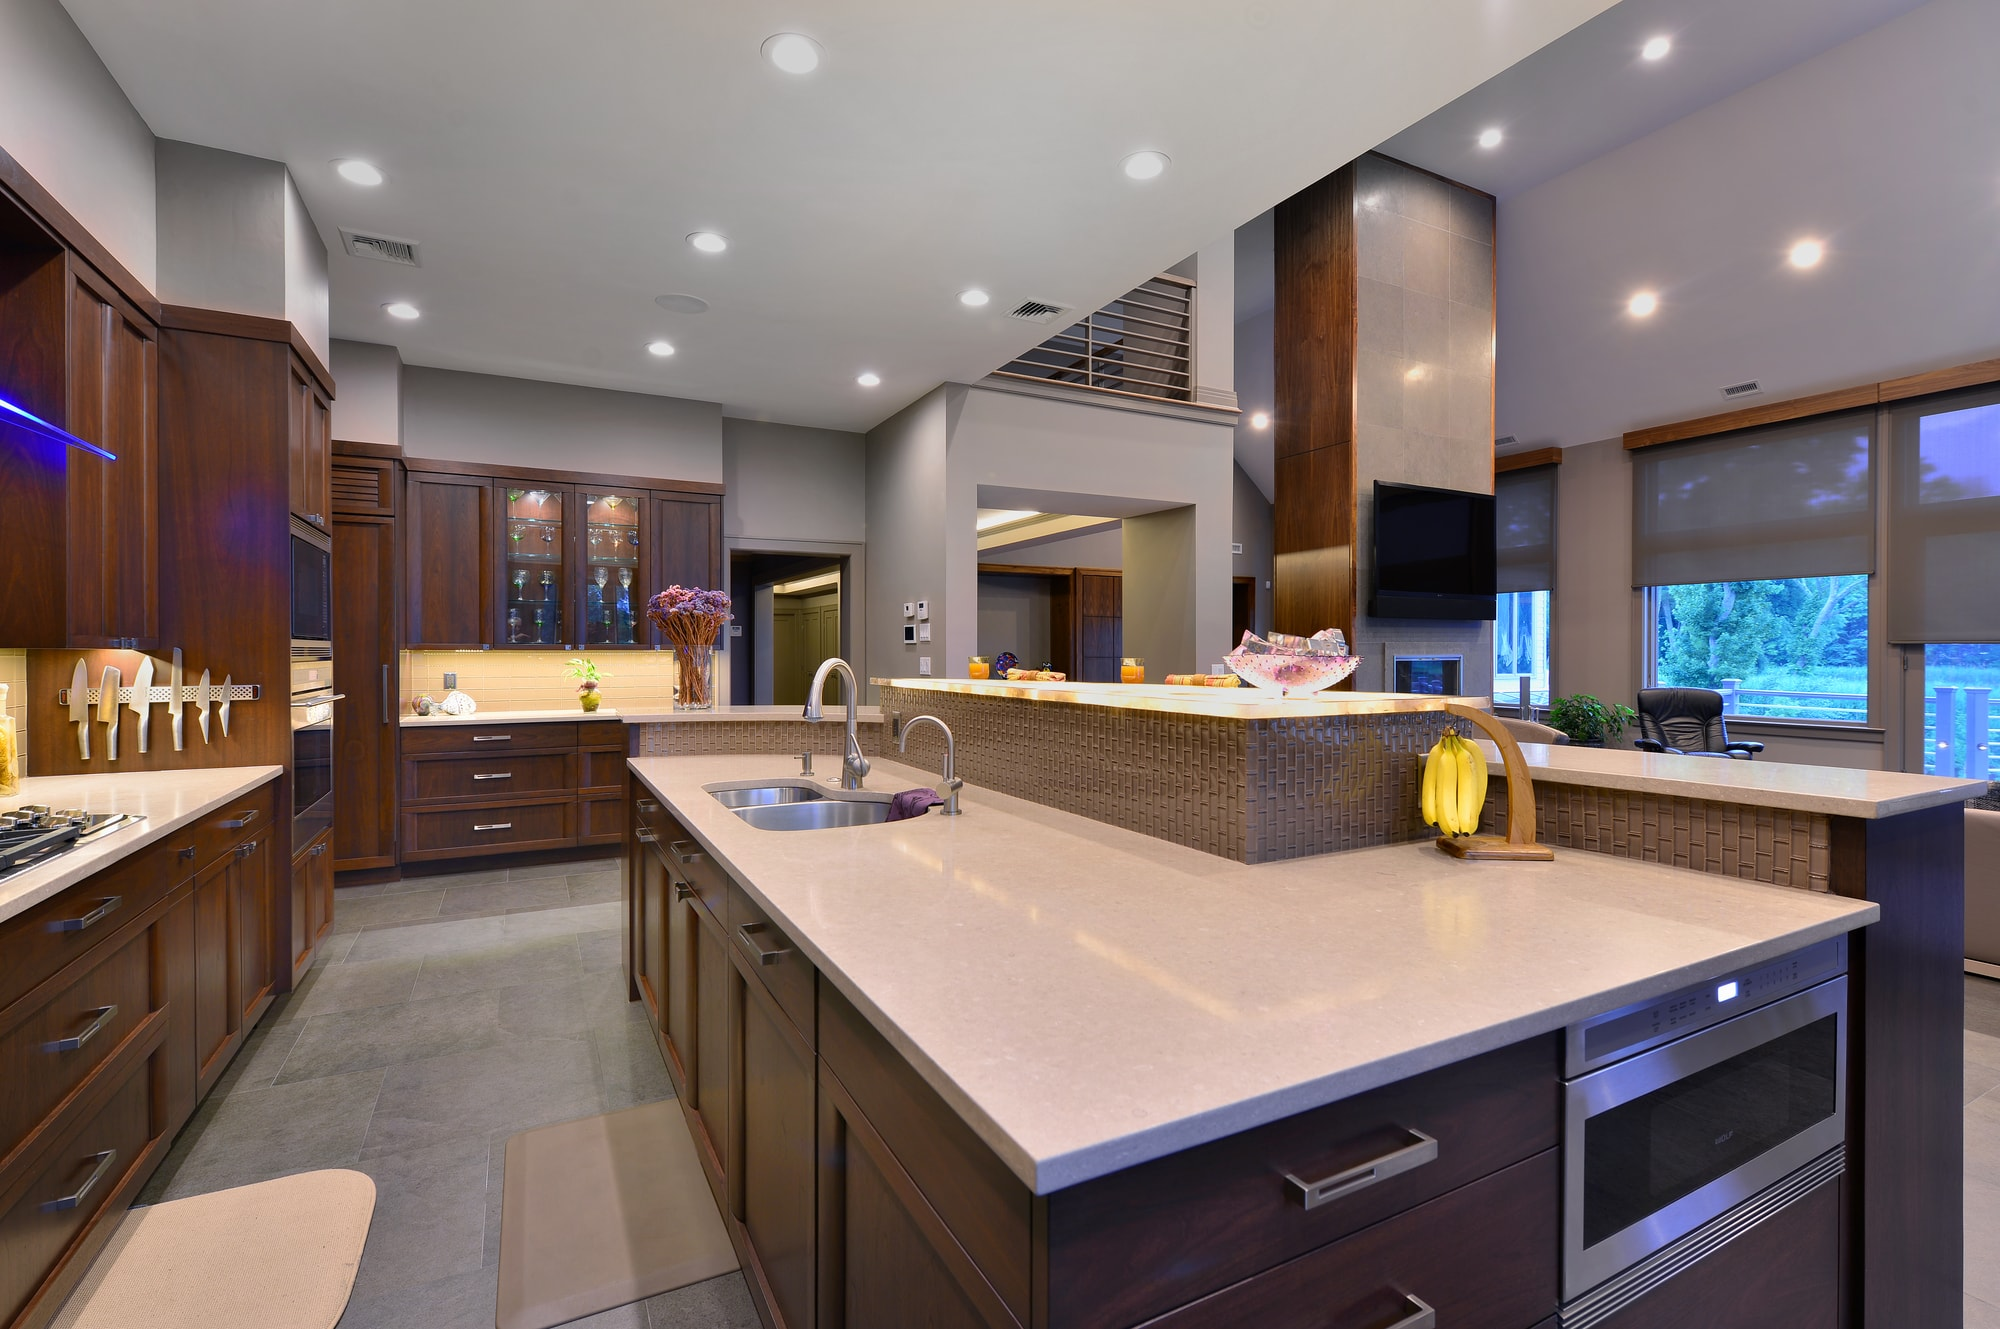 Transitional style kitchen with tiled floor